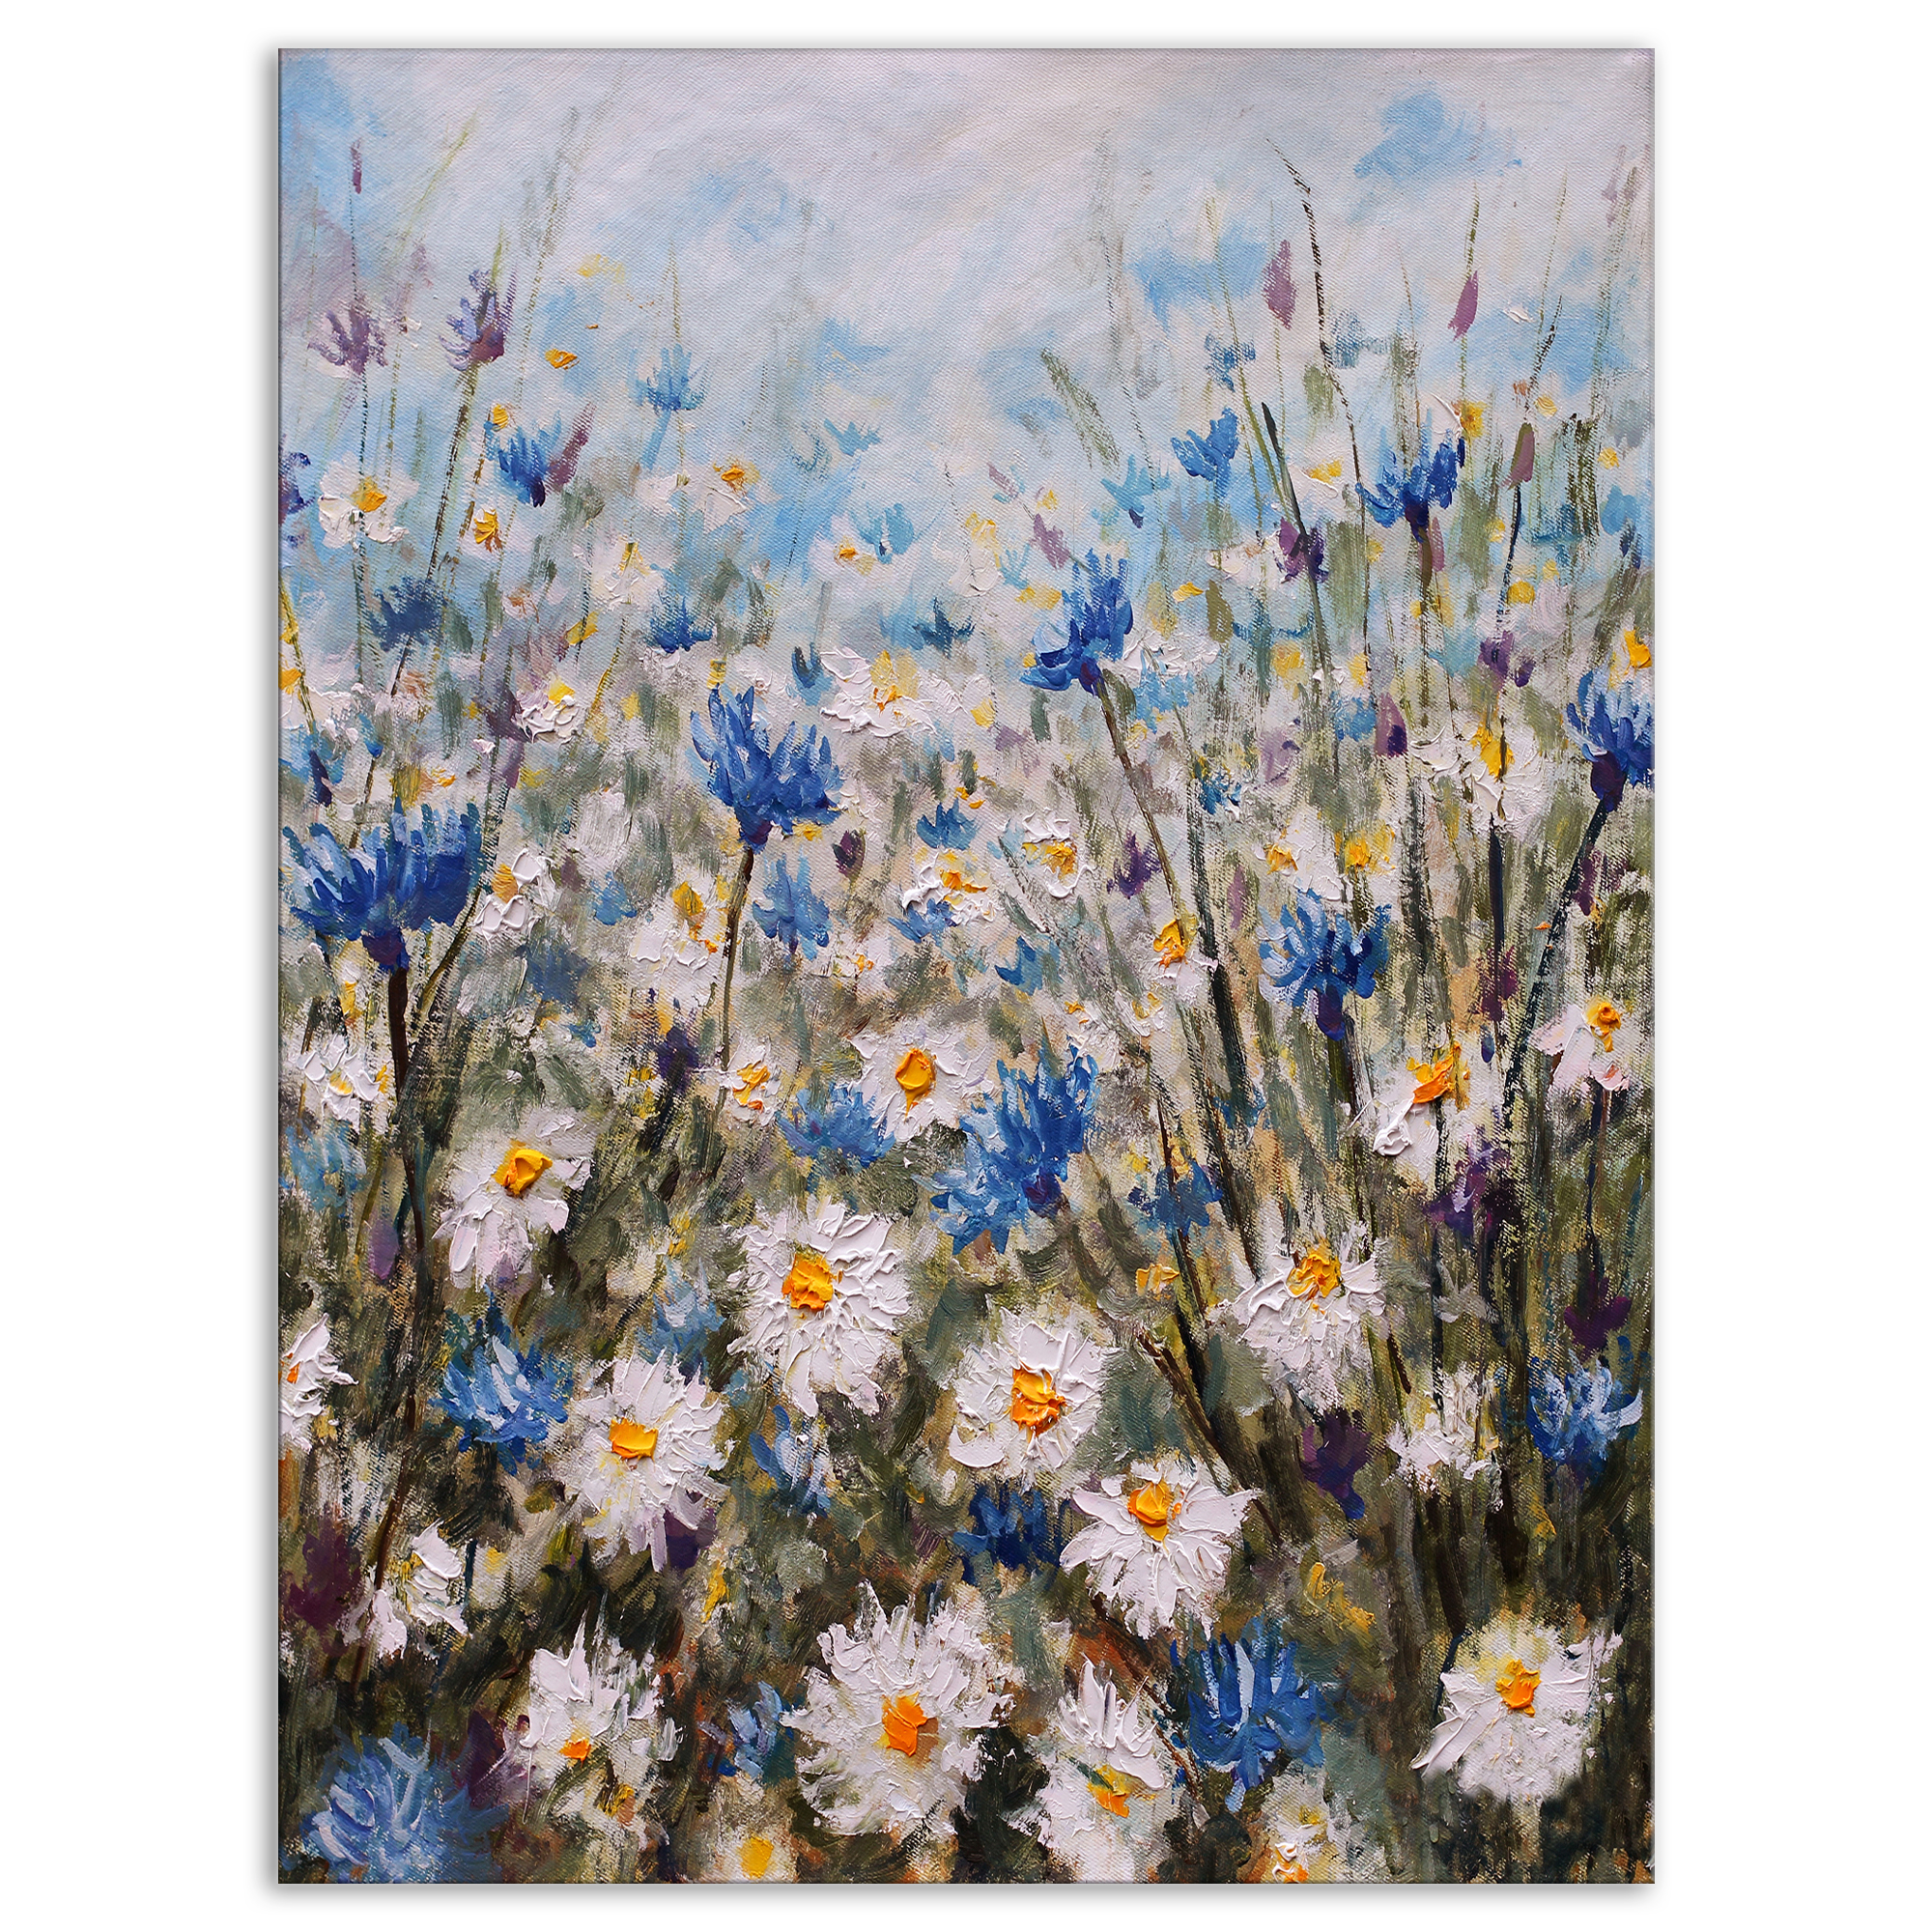 Glade of Cornflowers and Daisies - Floral Art Canvas Print - image 1 of 3